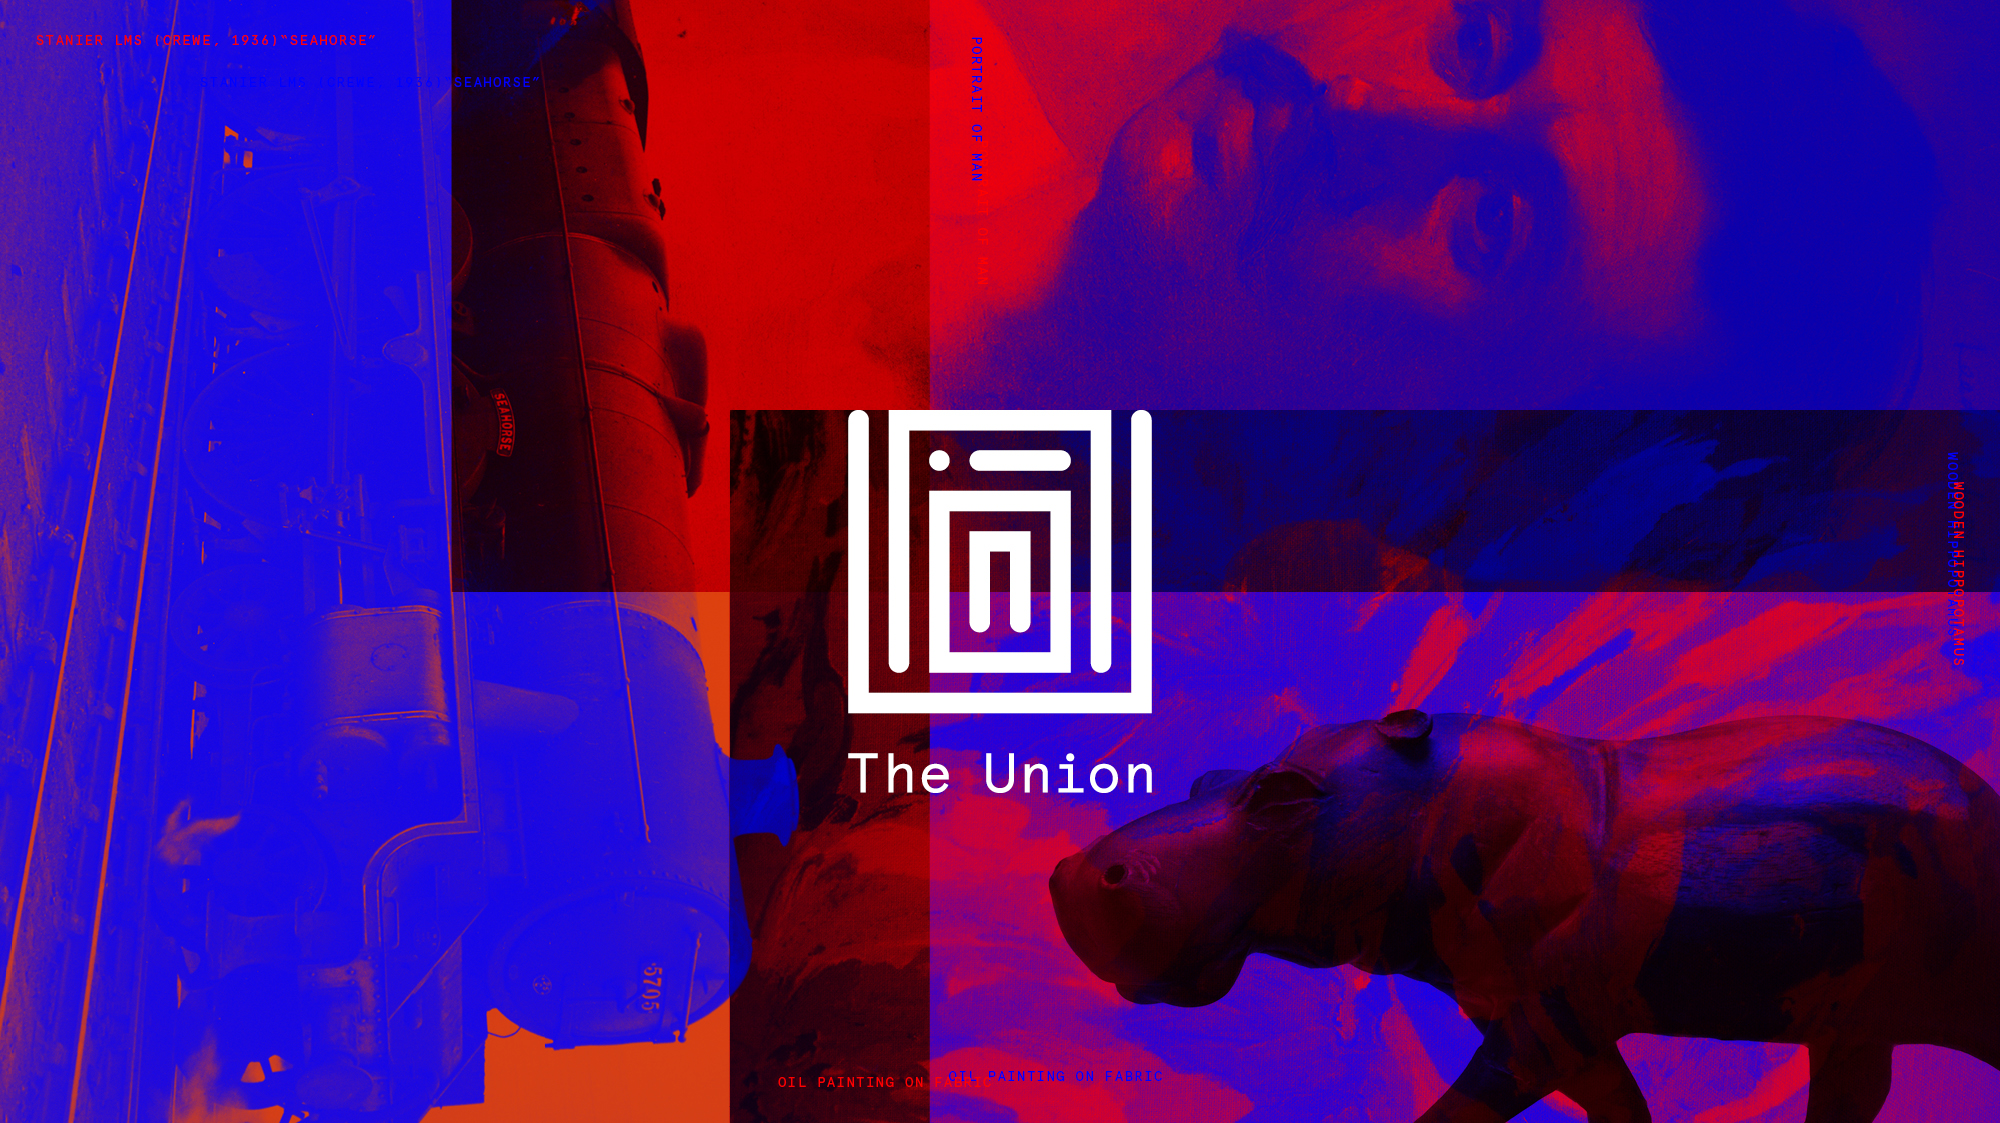 05 The Union background